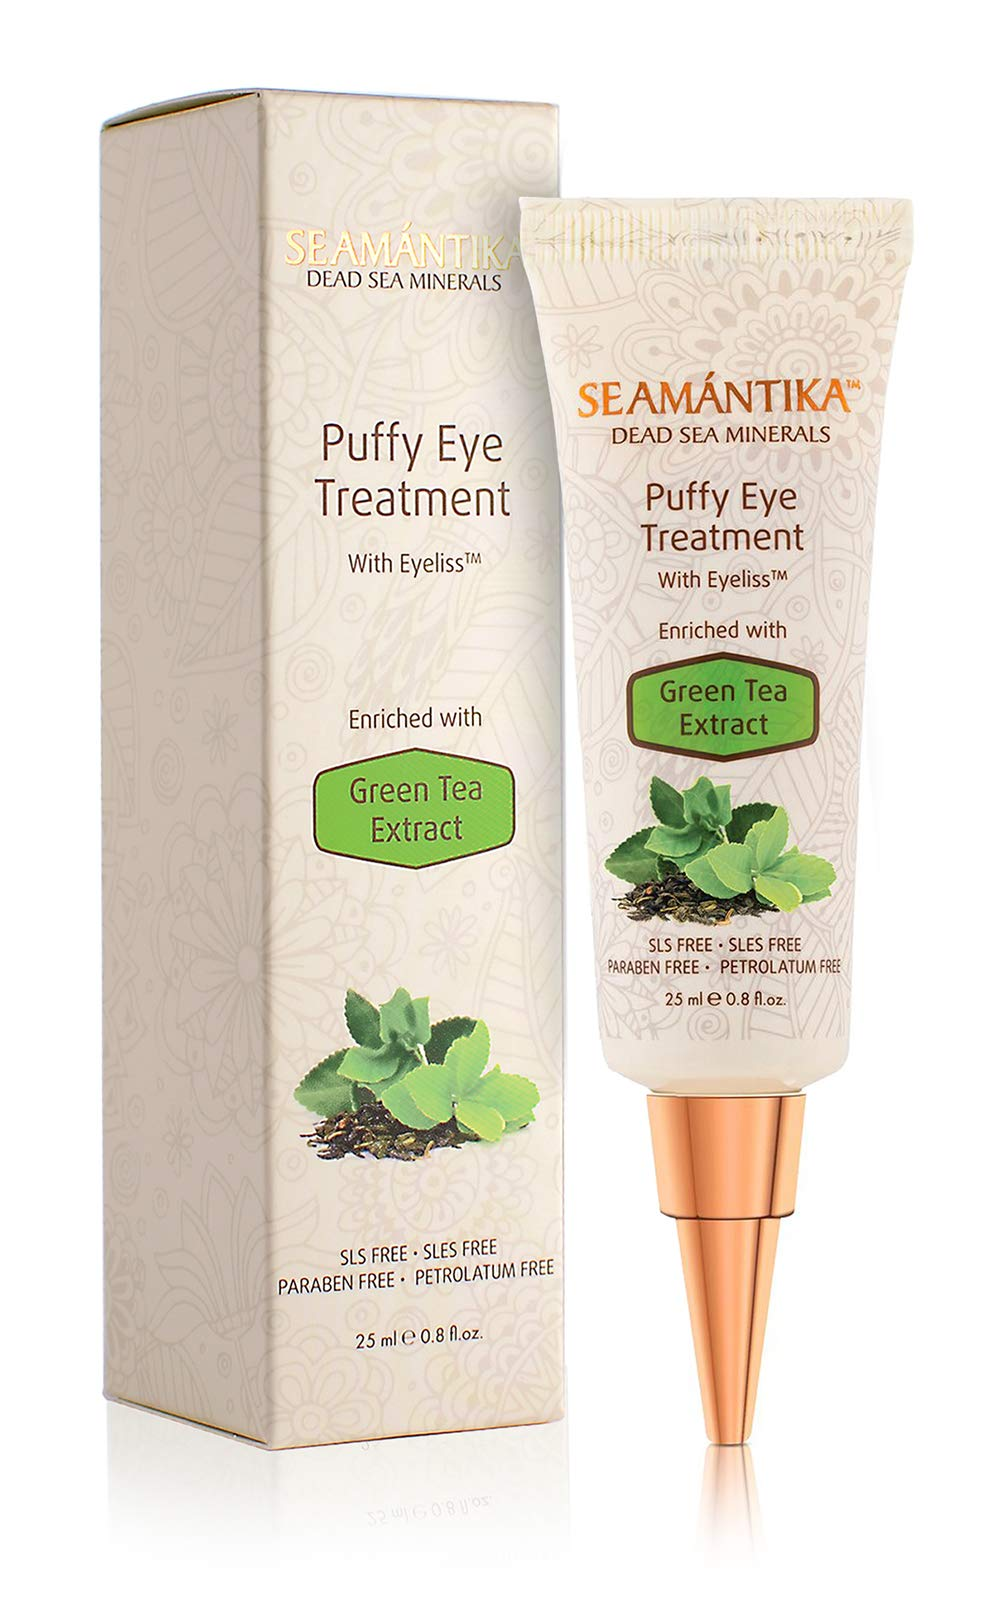 Puffy Eyes Treatment Instant results - Naturally Eliminate Wrinkles, Puffiness, Dark Circle and Bags in Minutes - Hydrating Eye Cream w/Green Tea Extract, Dead Sea Minerals by SEAMANTIKA - .8 oz by SEAMANTIKA